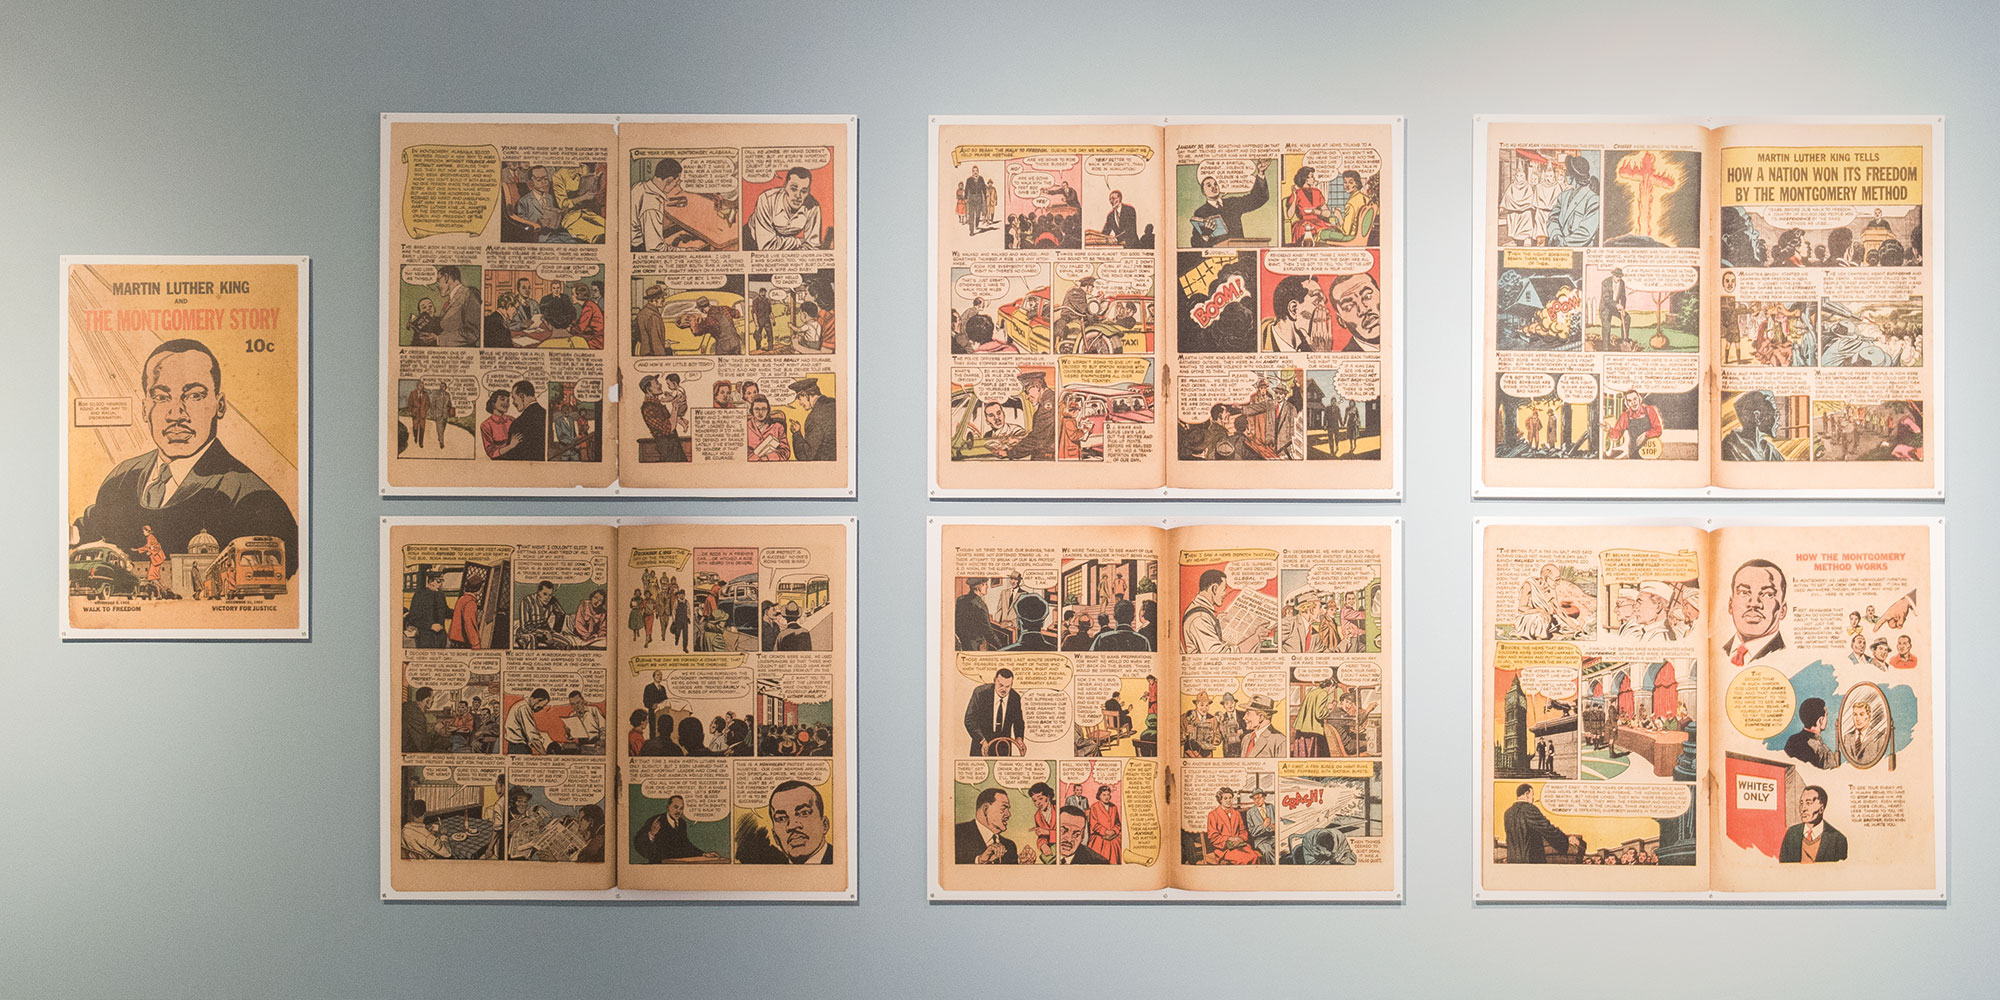 The African American Cultural Center presents a diverse array of performers and exhibits to interpret African-American culture and history at the August Wilson Center. The exhibition shown here— From MLK to March—highlights the little-known comic books and editorial cartoons of the civil rights era.